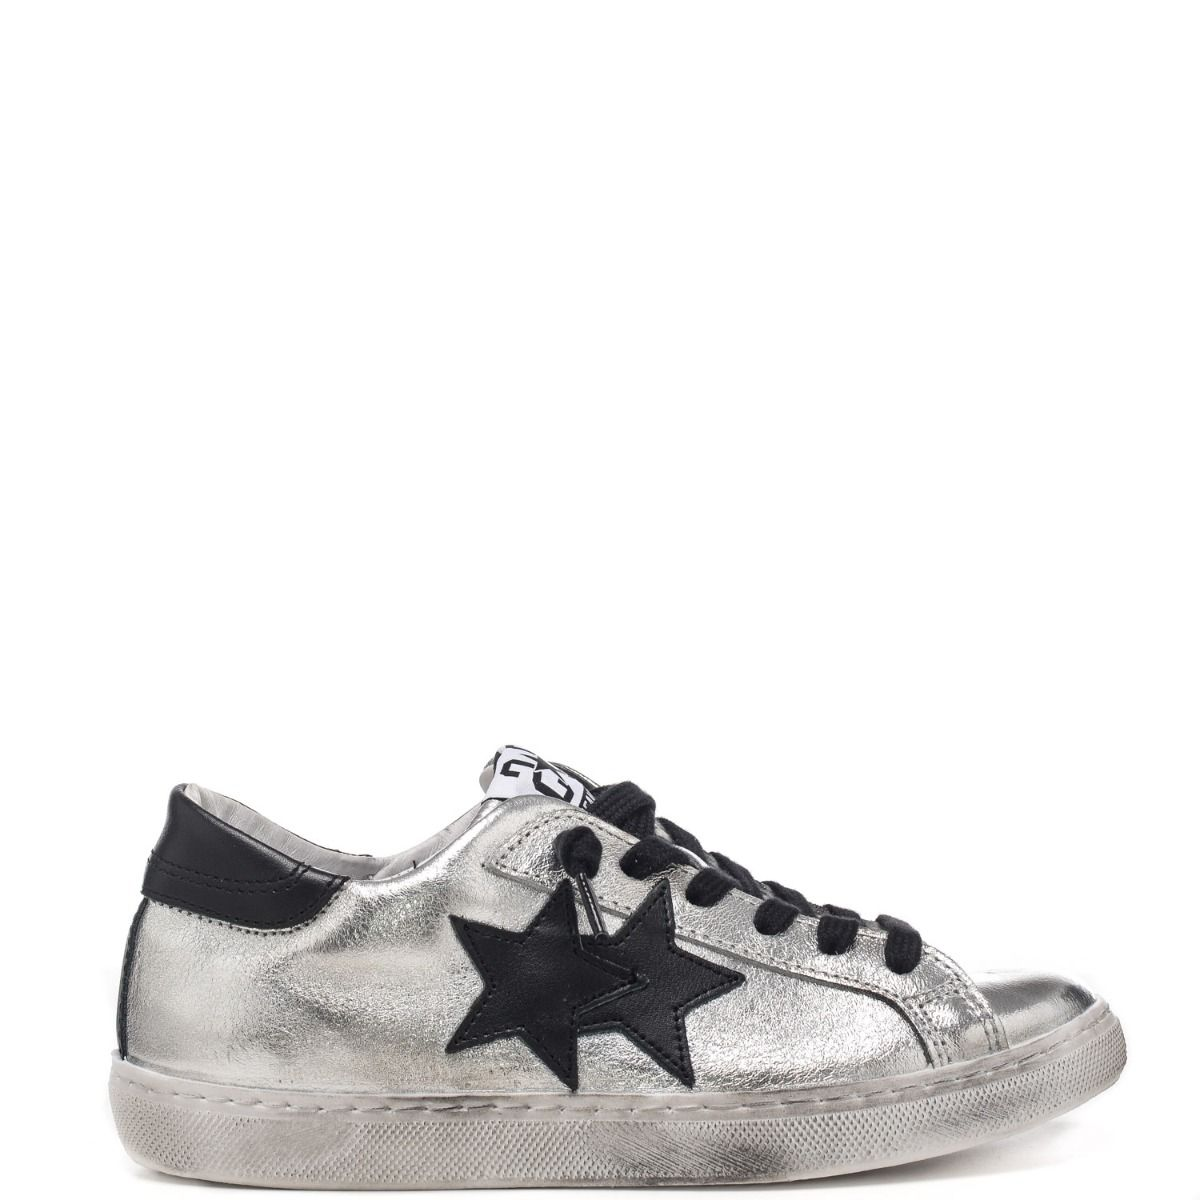 2 Star sneakers 2sd2818